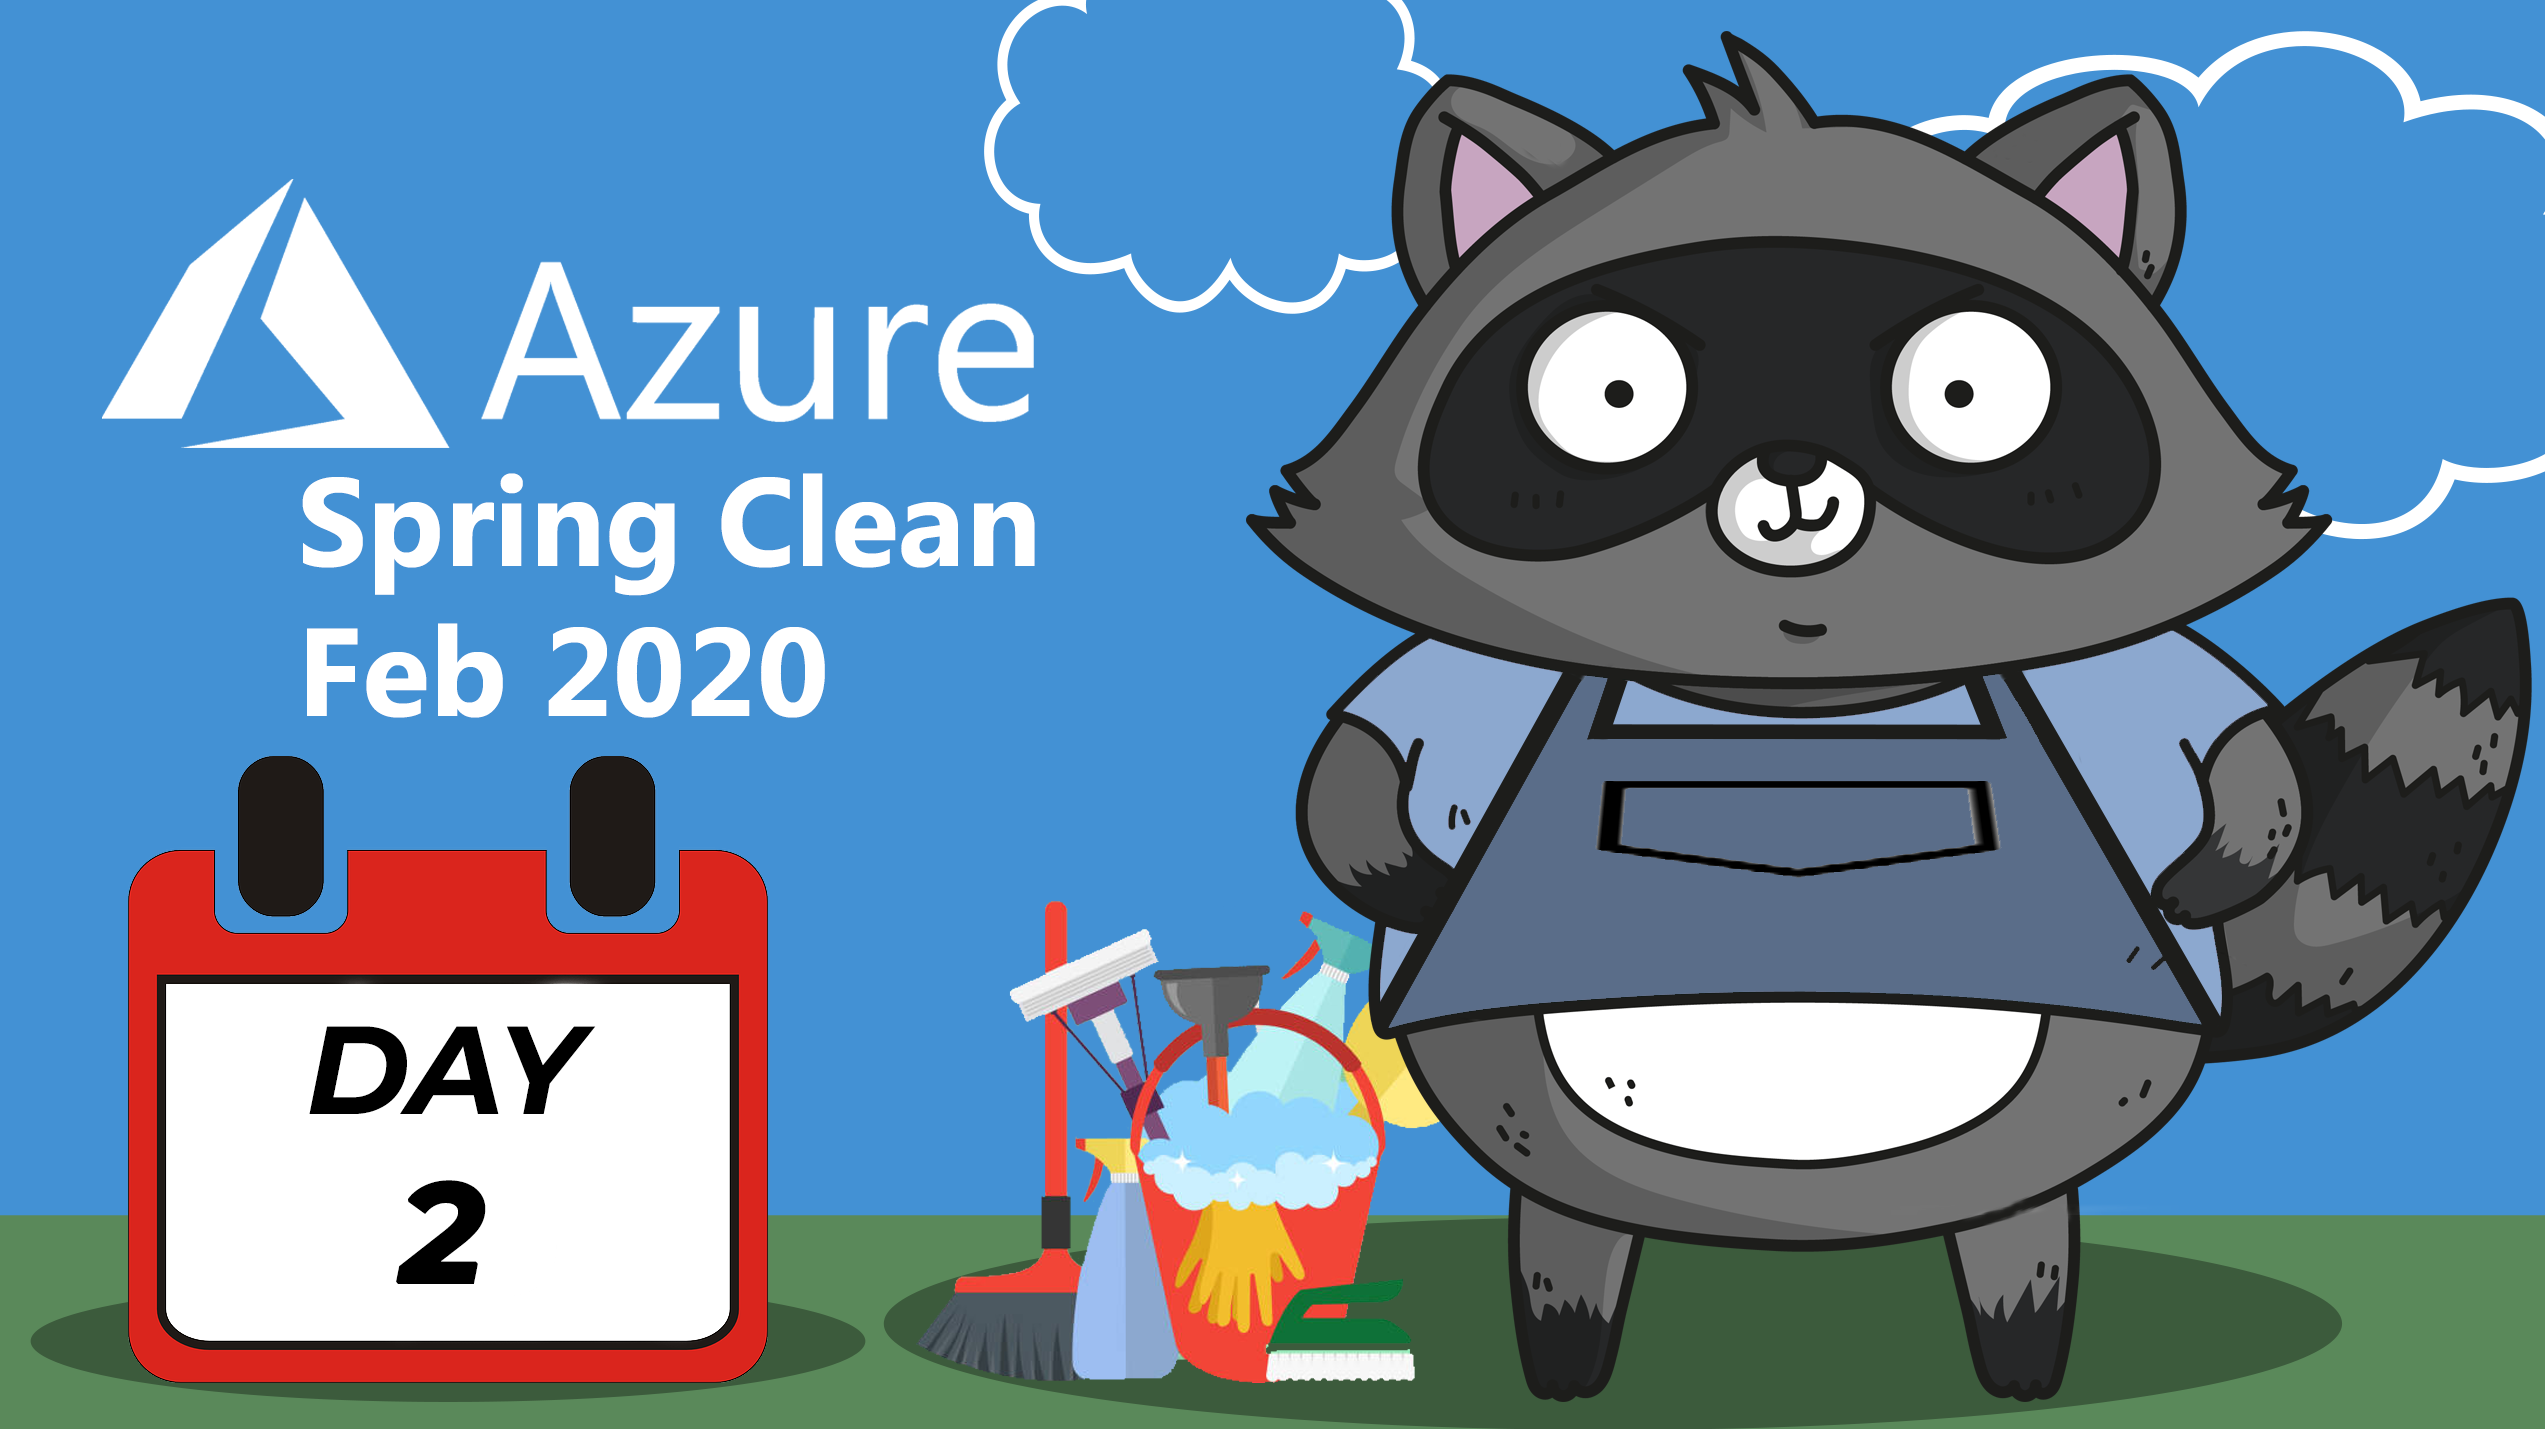 Azure Spring Clean: Azure Policy for AKS